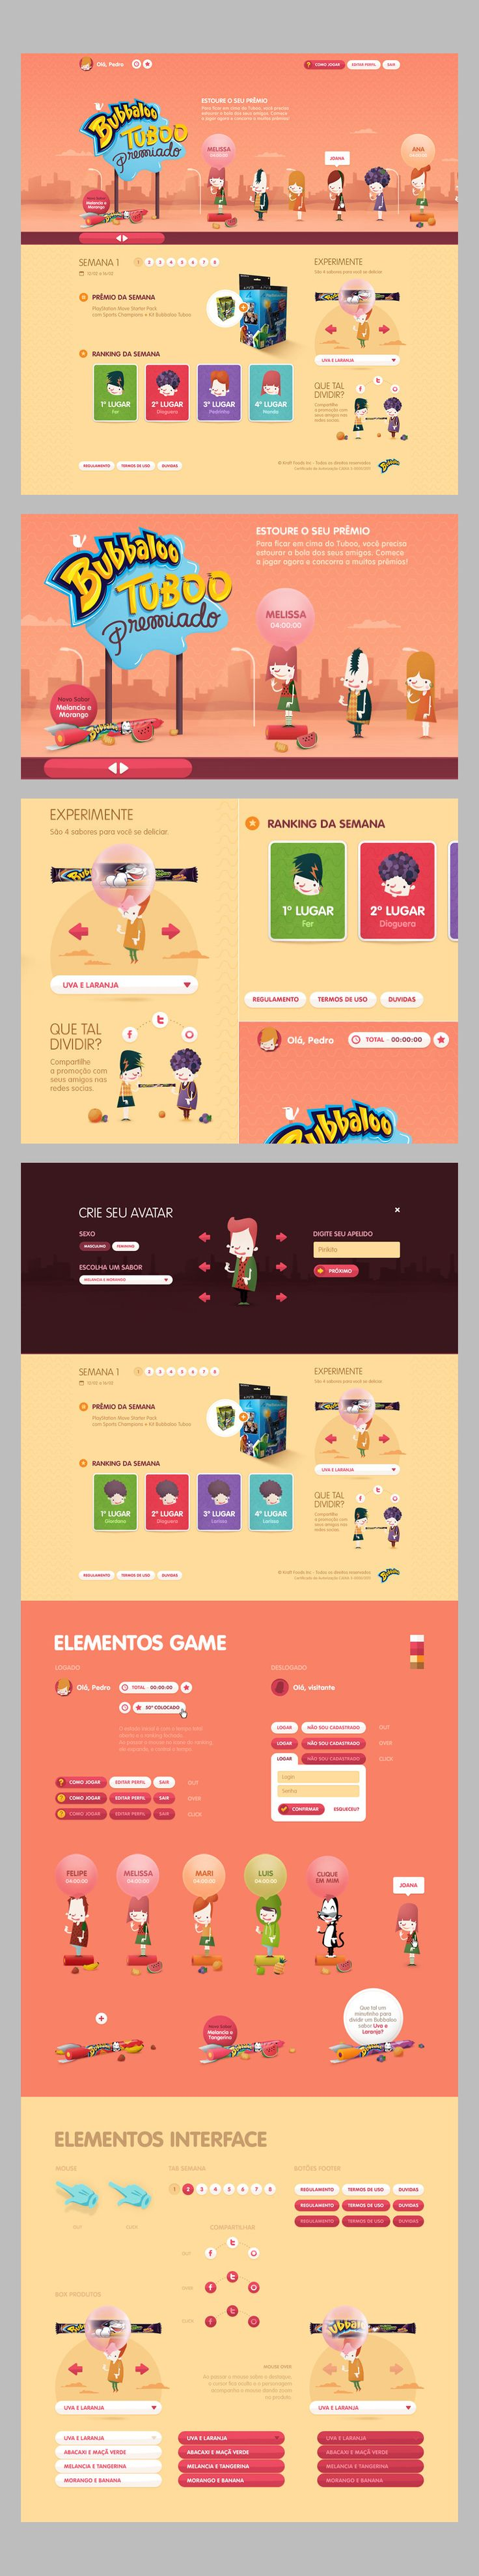 BUBBALOO web site - Agency: CUBOCC * My Role: Art Direction and Design * www.bubbaloo.com.br - really interesting color scheme